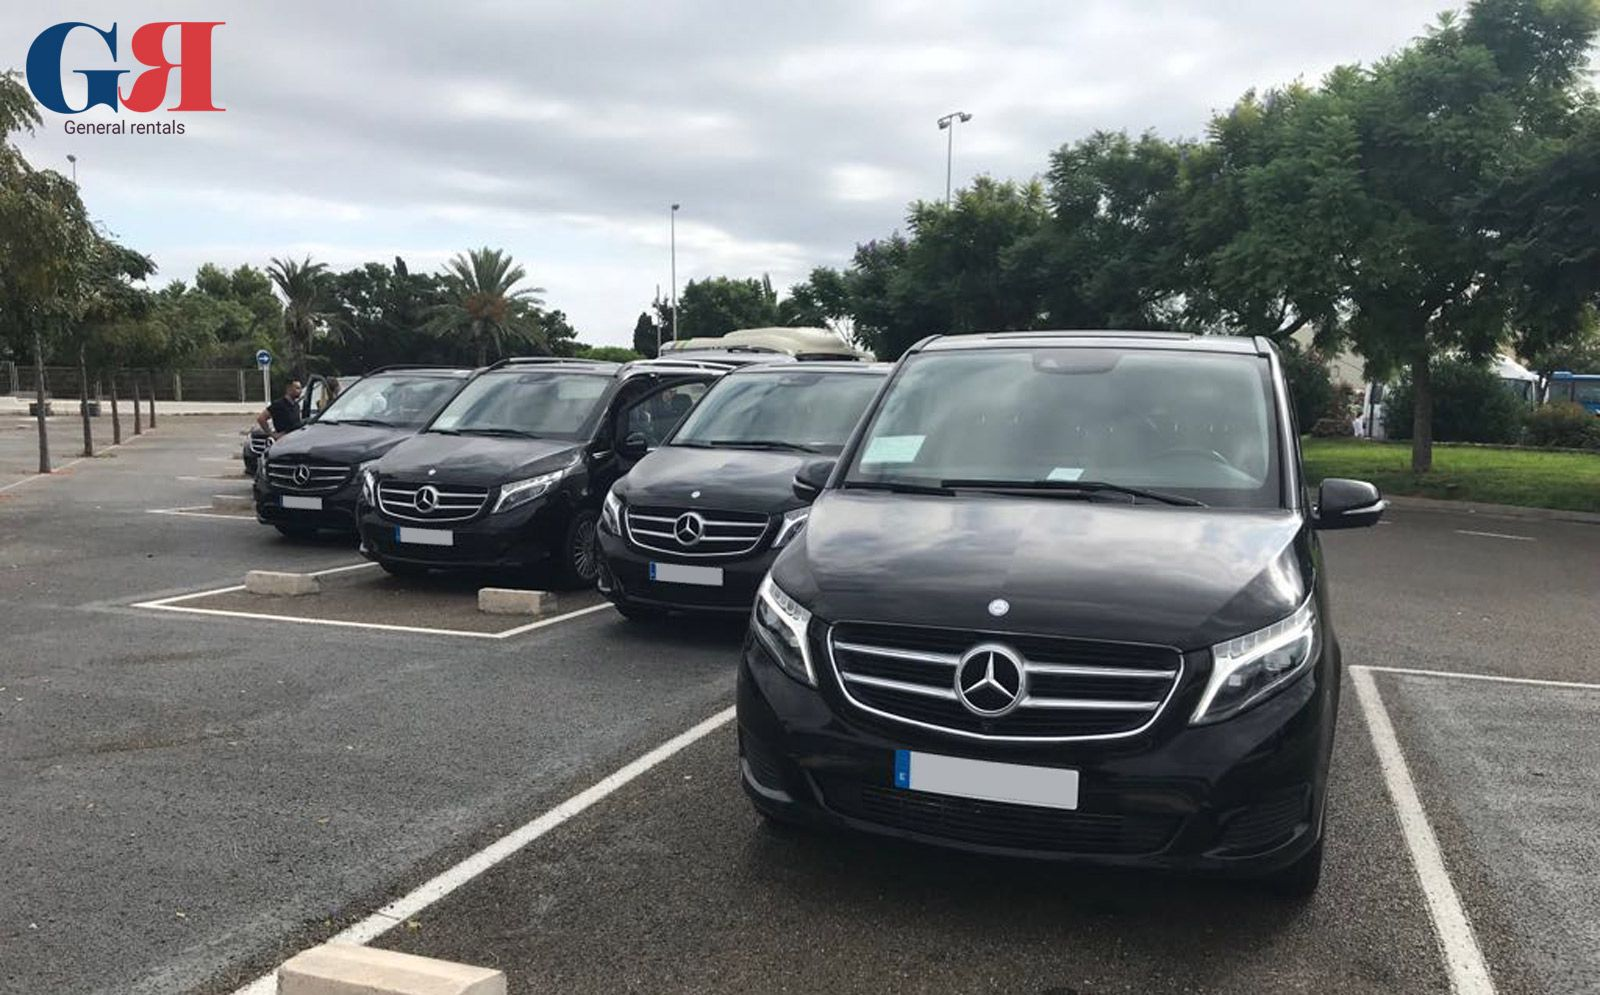 General-Rentals Transfer Vip V-Class Barcelona